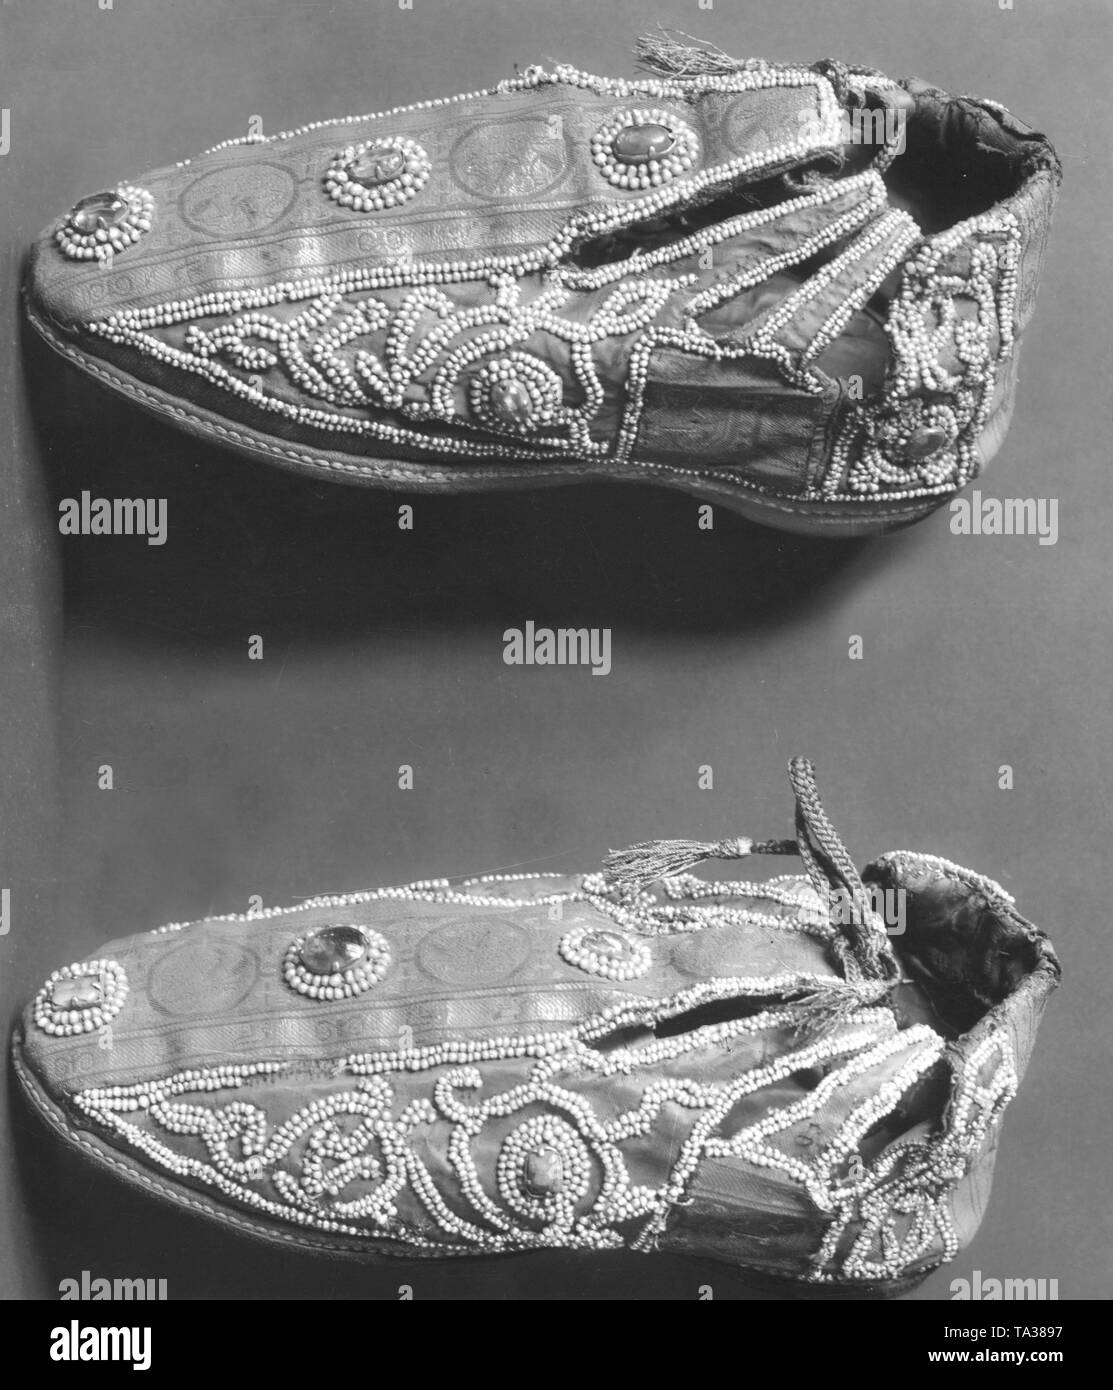 Shoes of the coronation robes, beside the clothes the regalia also includes the imperial insignia. The coronation regalia was worn at the coronation ceremony. - Stock Image